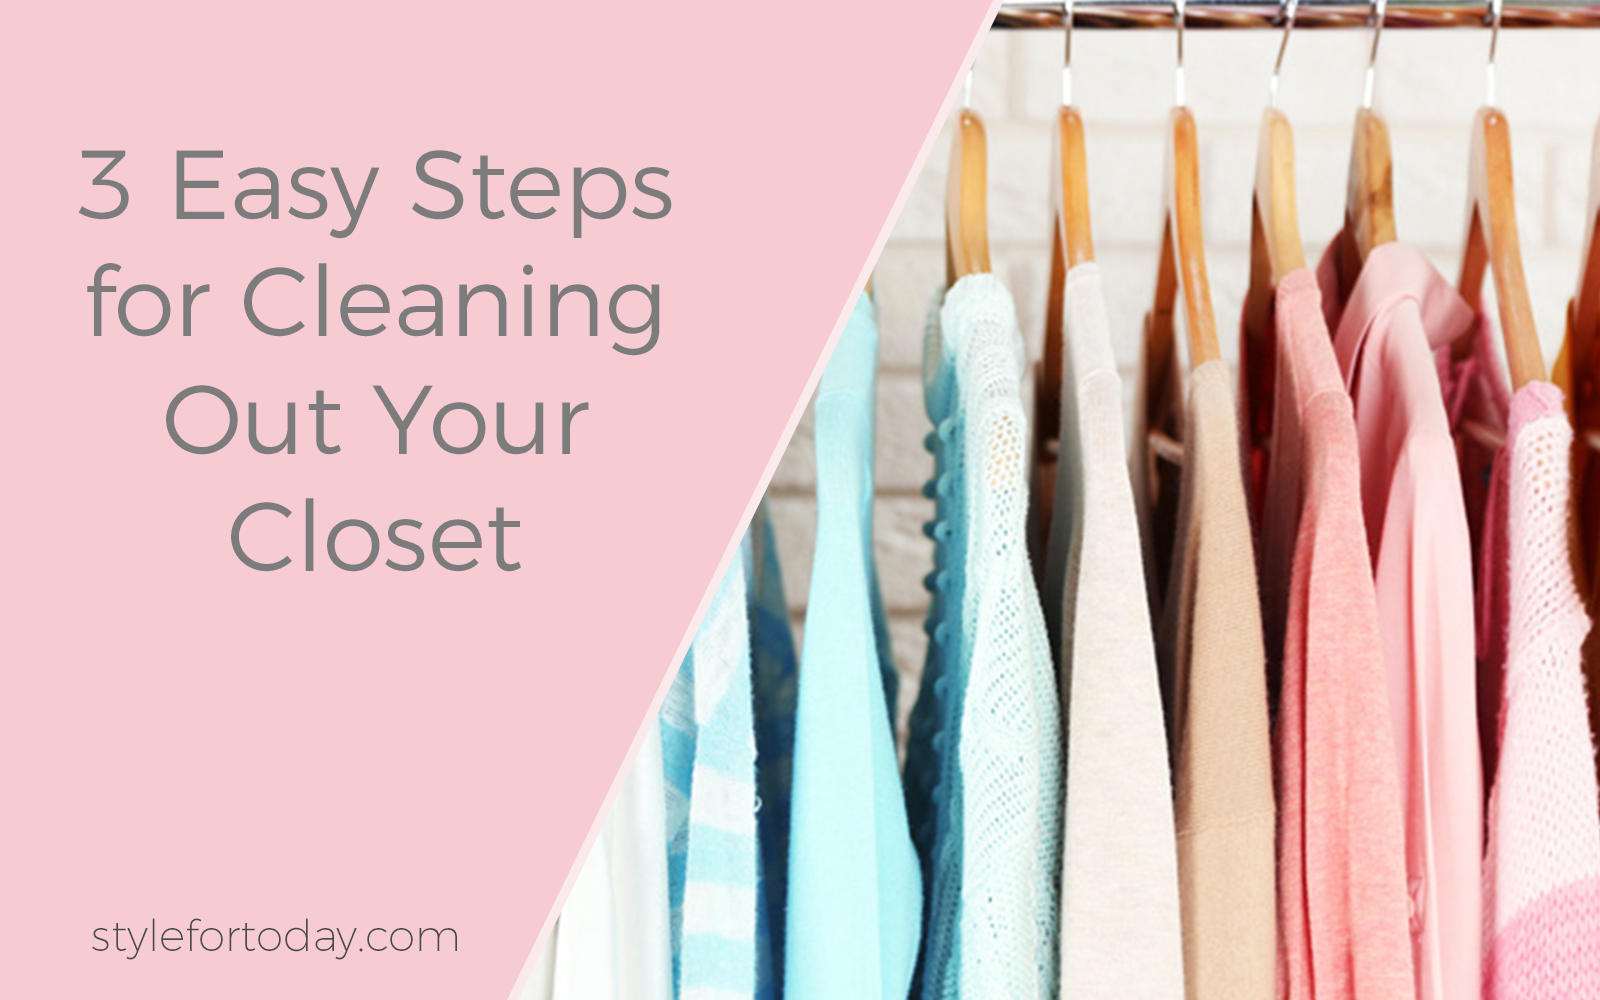 3 Easy Steps for Cleaning Out Your Closet from Style For Today